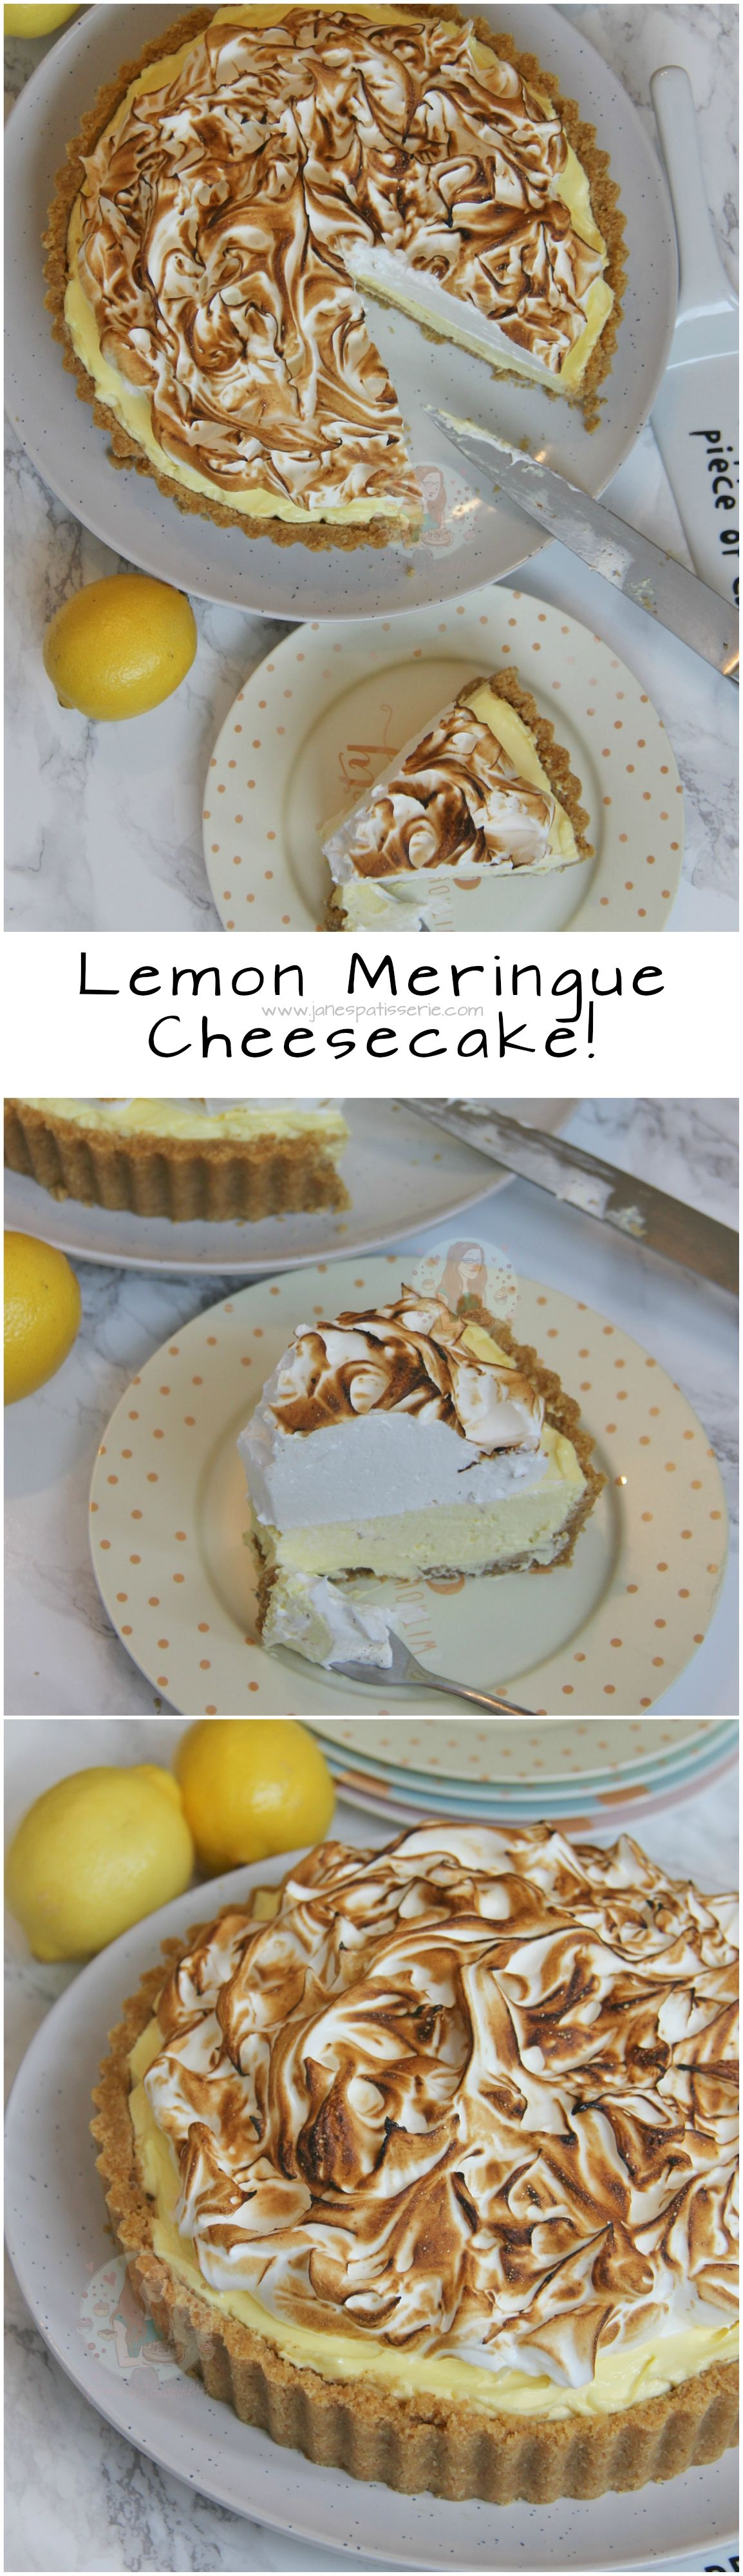 Lemon Meringue Cheesecake!  A Buttery Biscuit Base, Smooth Lemon Cheesecake Filling, and an Italian Meringue make this No-Bake Lemon Meringue Cheesecake the perfect Dessert & Showstopper! #lemonmeringuecheesecake